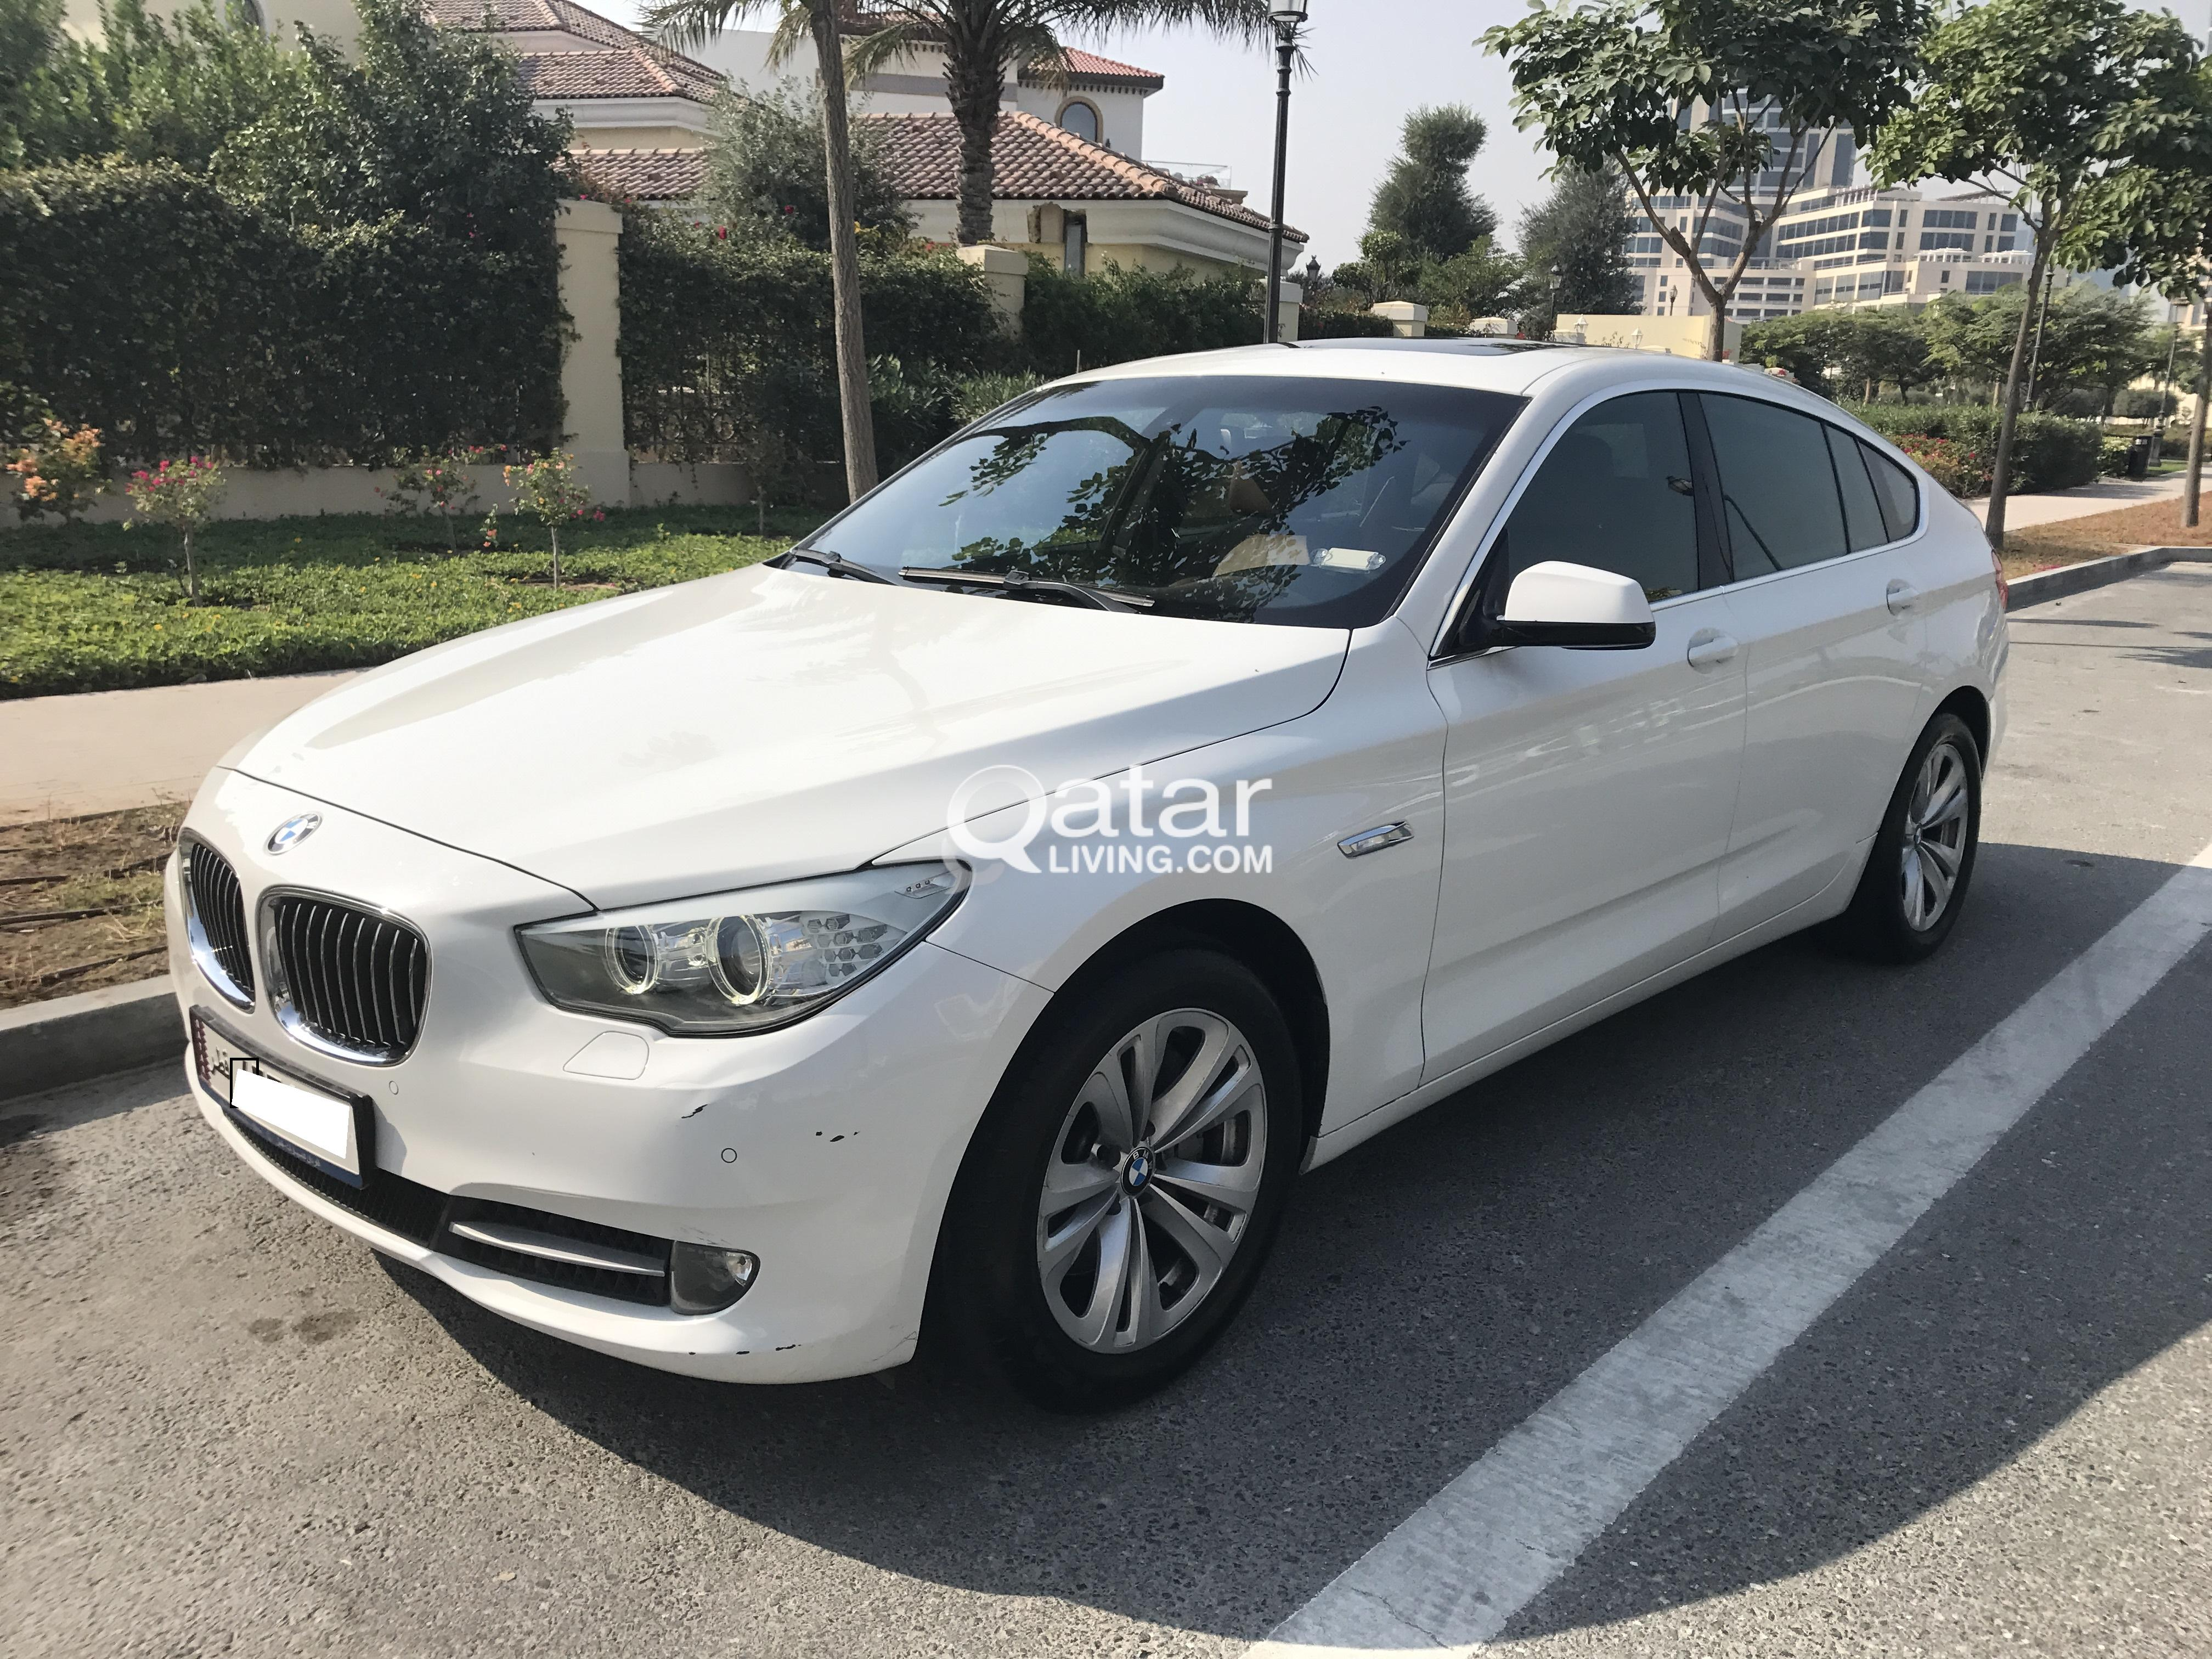 bmw and for bat on auctions sale reserve photos momentcar no speed information